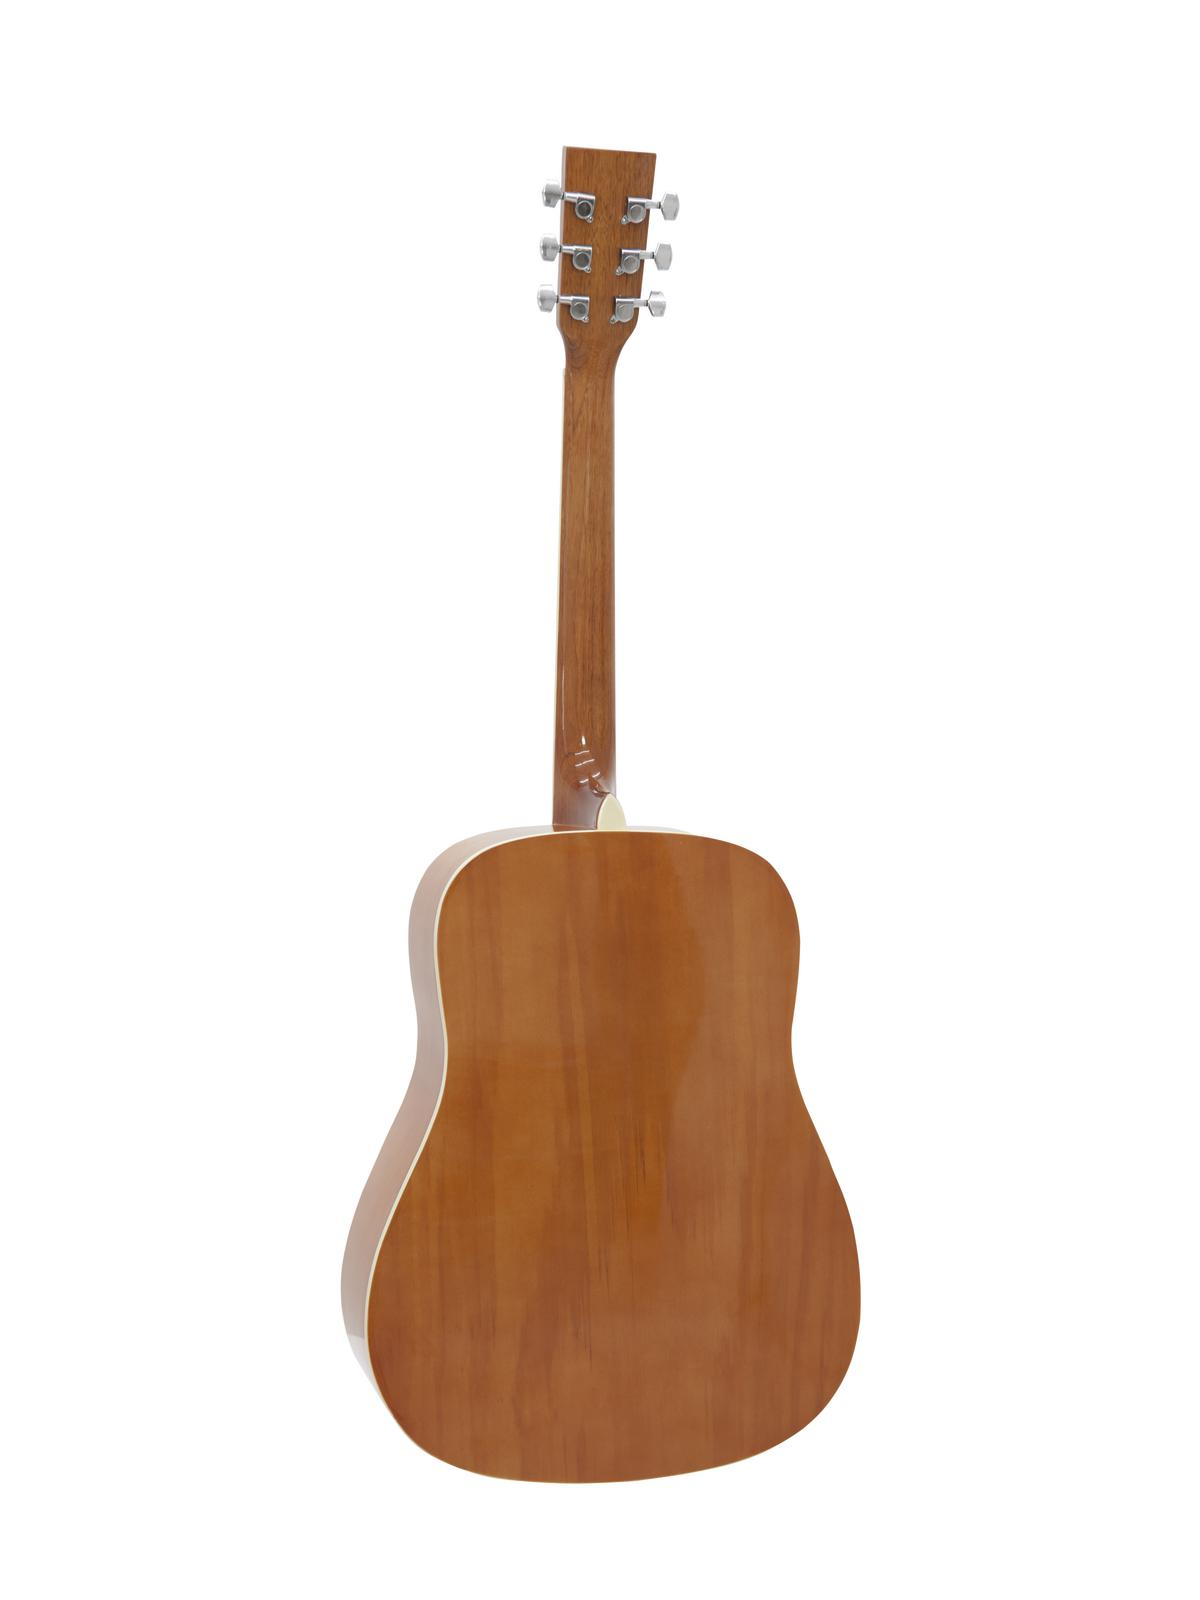 DIMAVERY DR-510 Dreadnought, sunburst